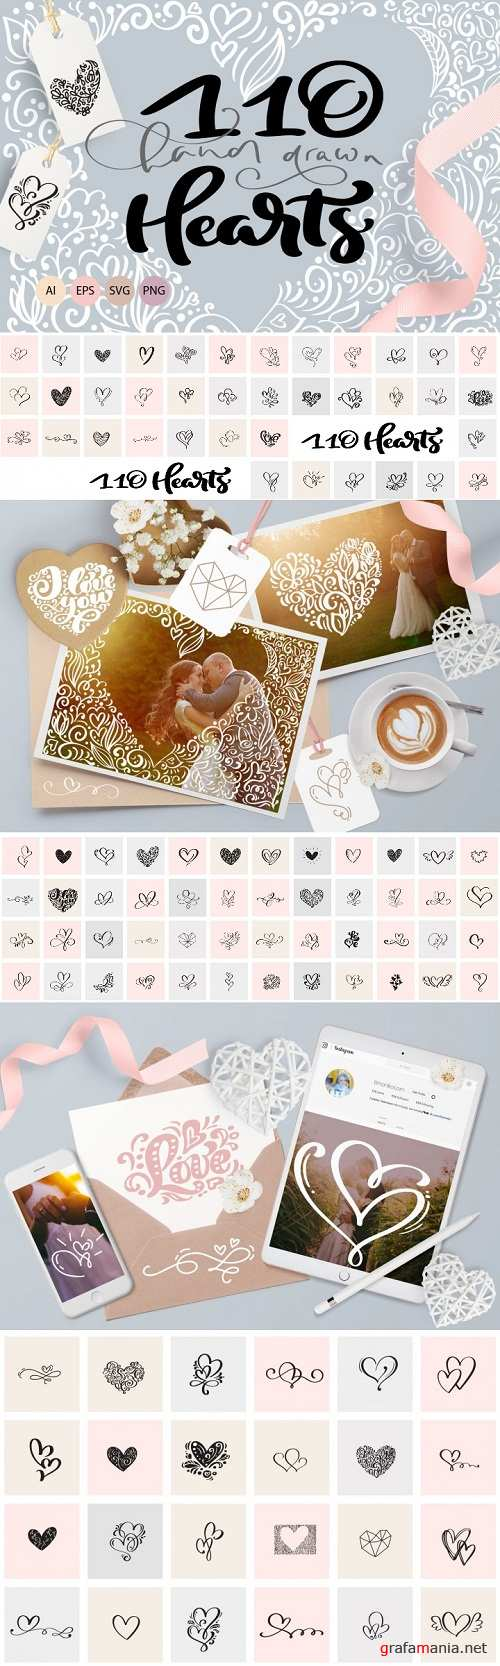 Valentine vector hand draw hearts 3336145 - 3519149